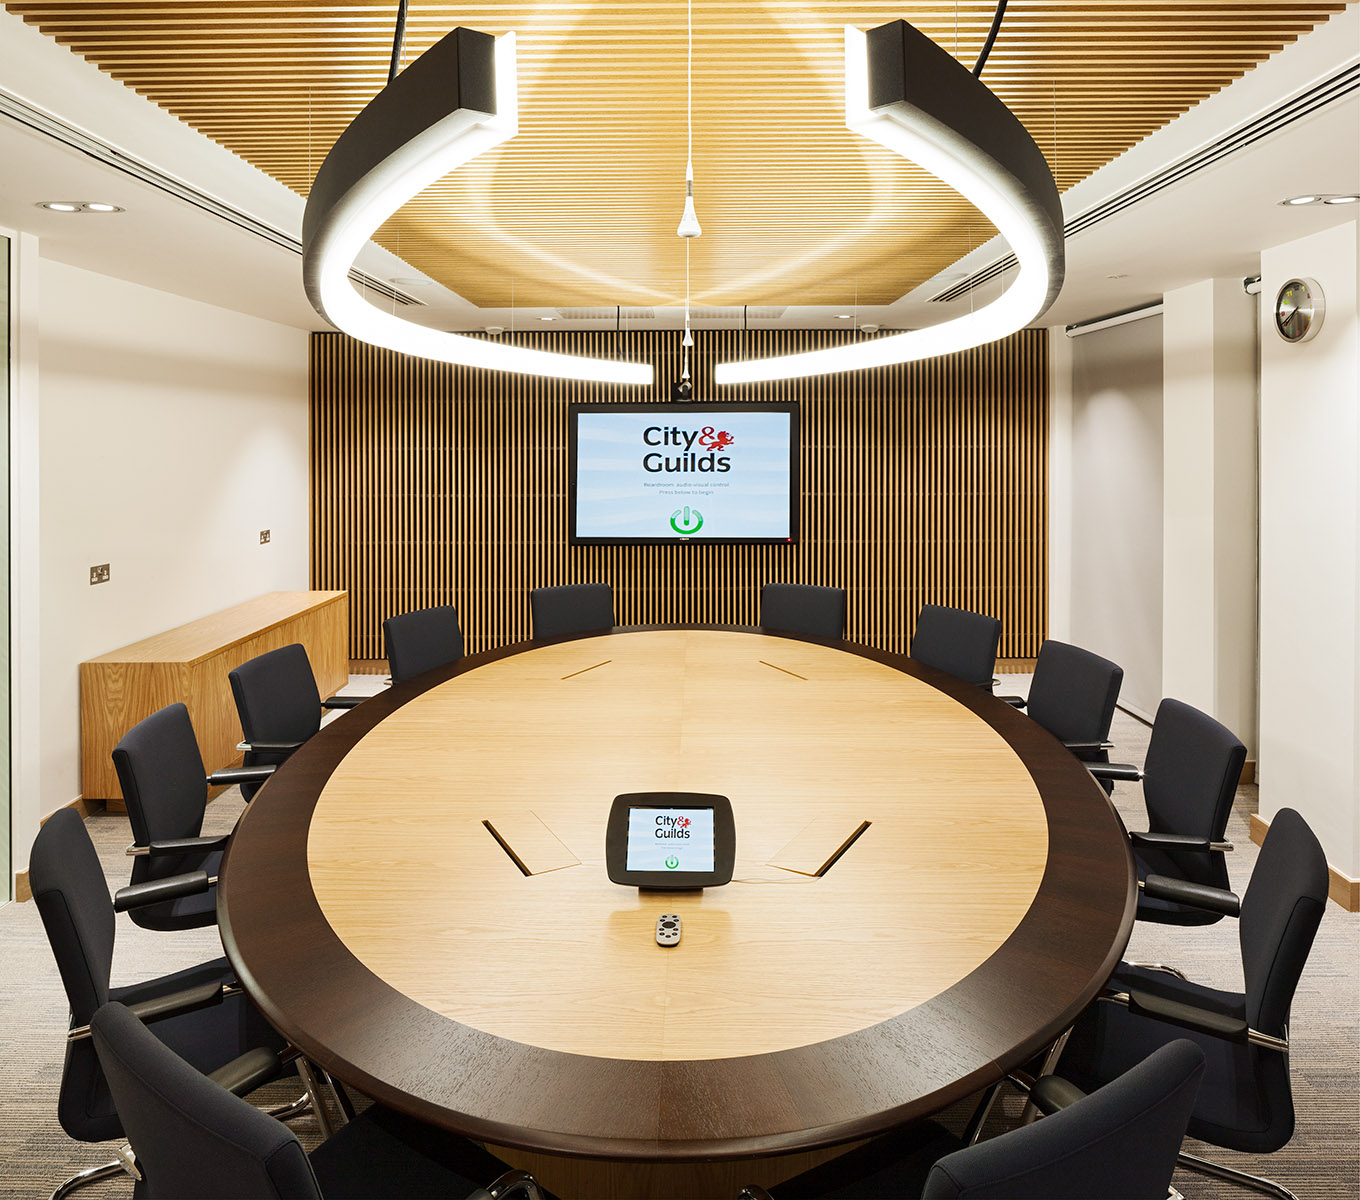 Complete internal refurbishment and extension for UK HQ of City & Guilds.Client: Artelia